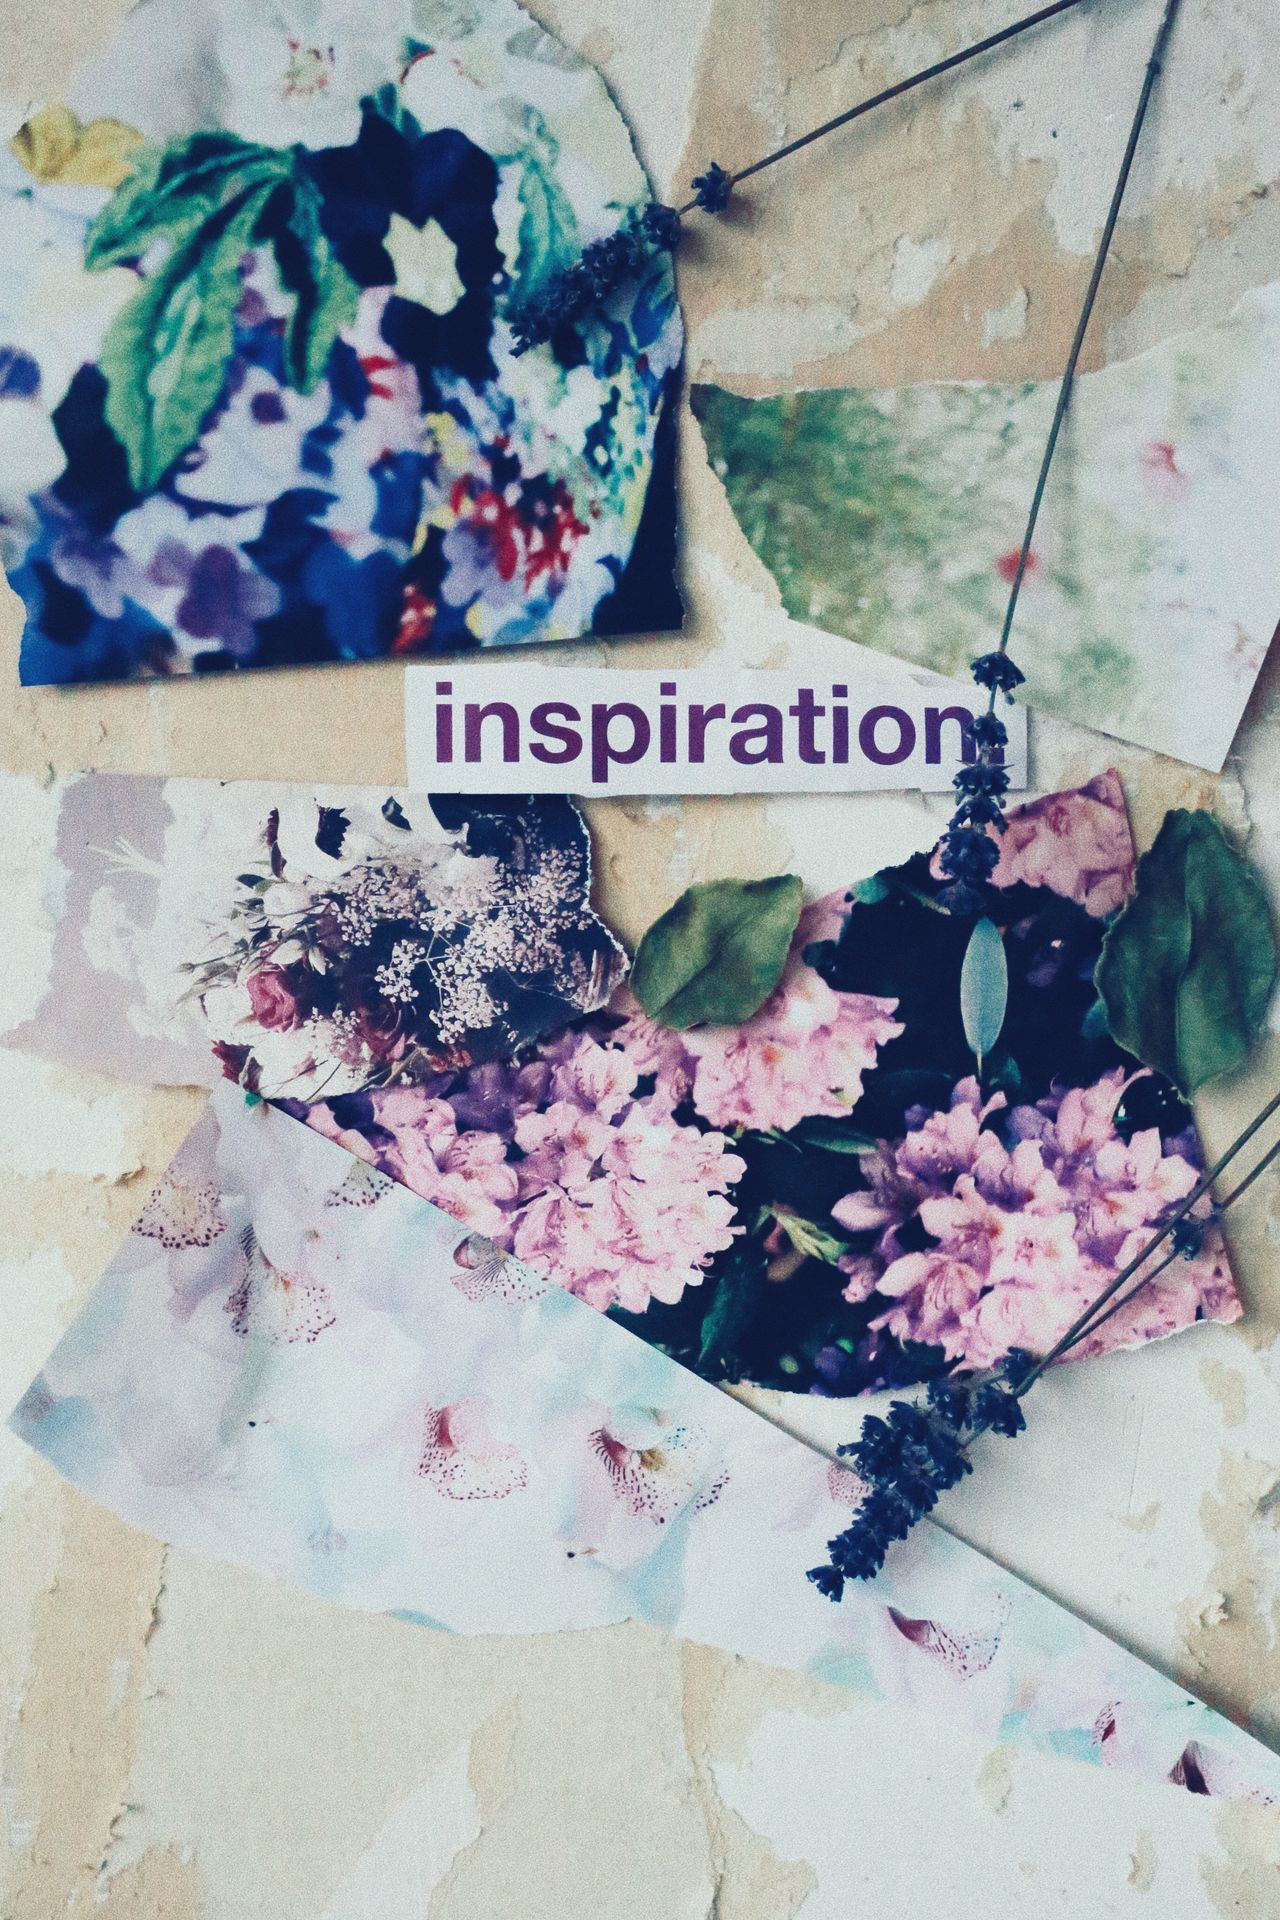 Flower Text No People Freshness Day Fragility Nature Beauty In Nature Outdoors Close-up Architecture Flower Head Background Layers Wallpapers Still Life Photography Words Conceptual Message Inspired Inspirational Inspirations Inspiration Abstract Indoors